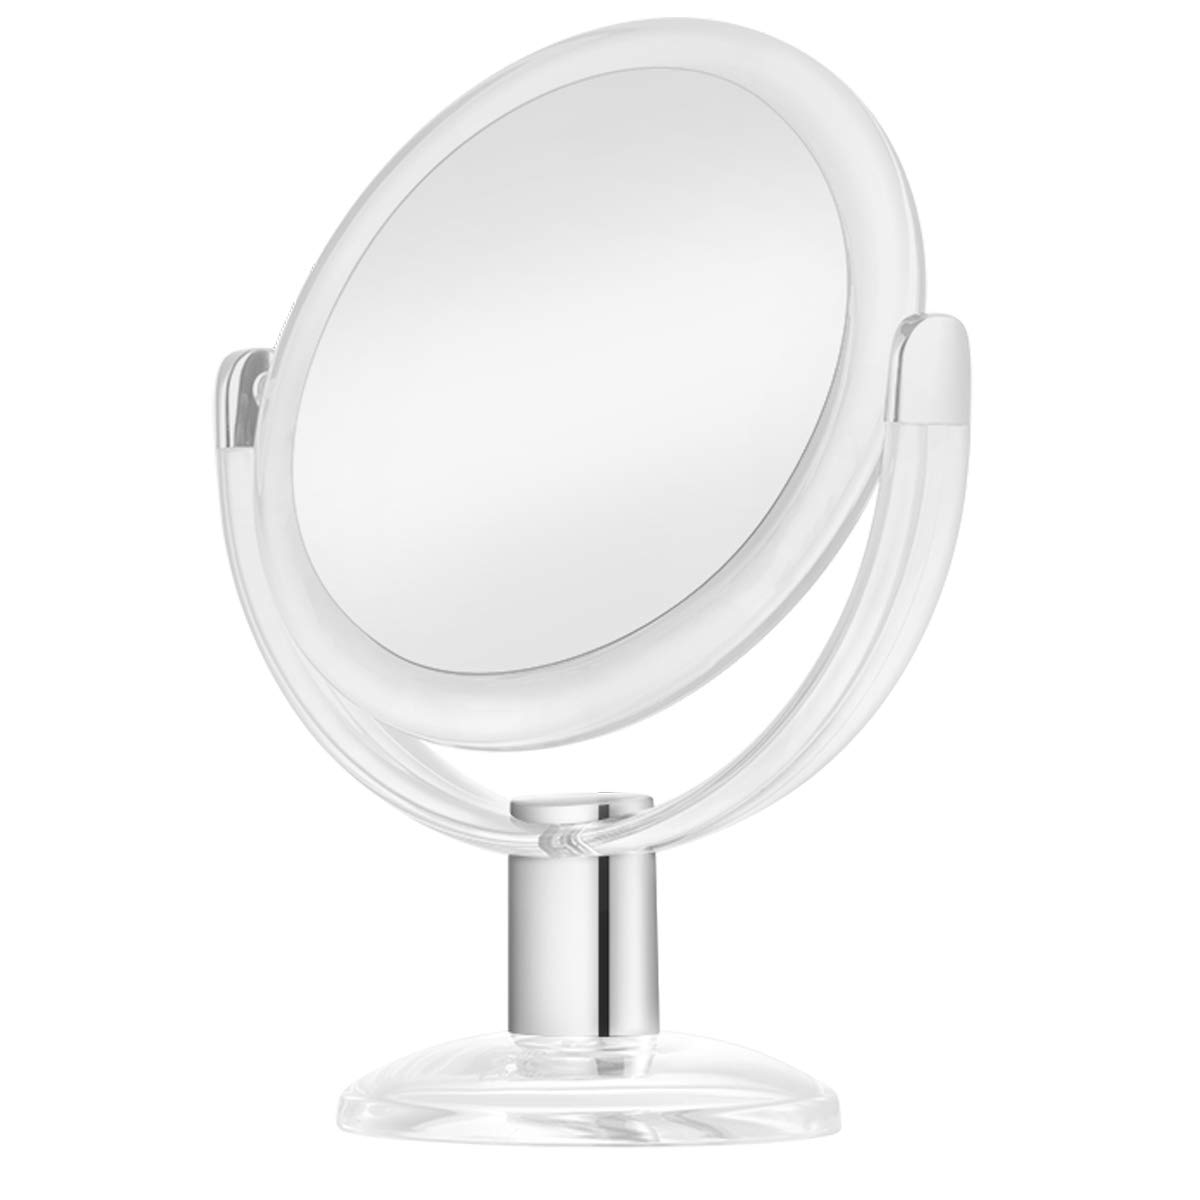 KEDSUM 1X 10X Double Sided Magnifying Makeup Mirror, Vanity Mirror with Magnification and 360 Degree Rotation for Bathroom Bedroom Table Top – White